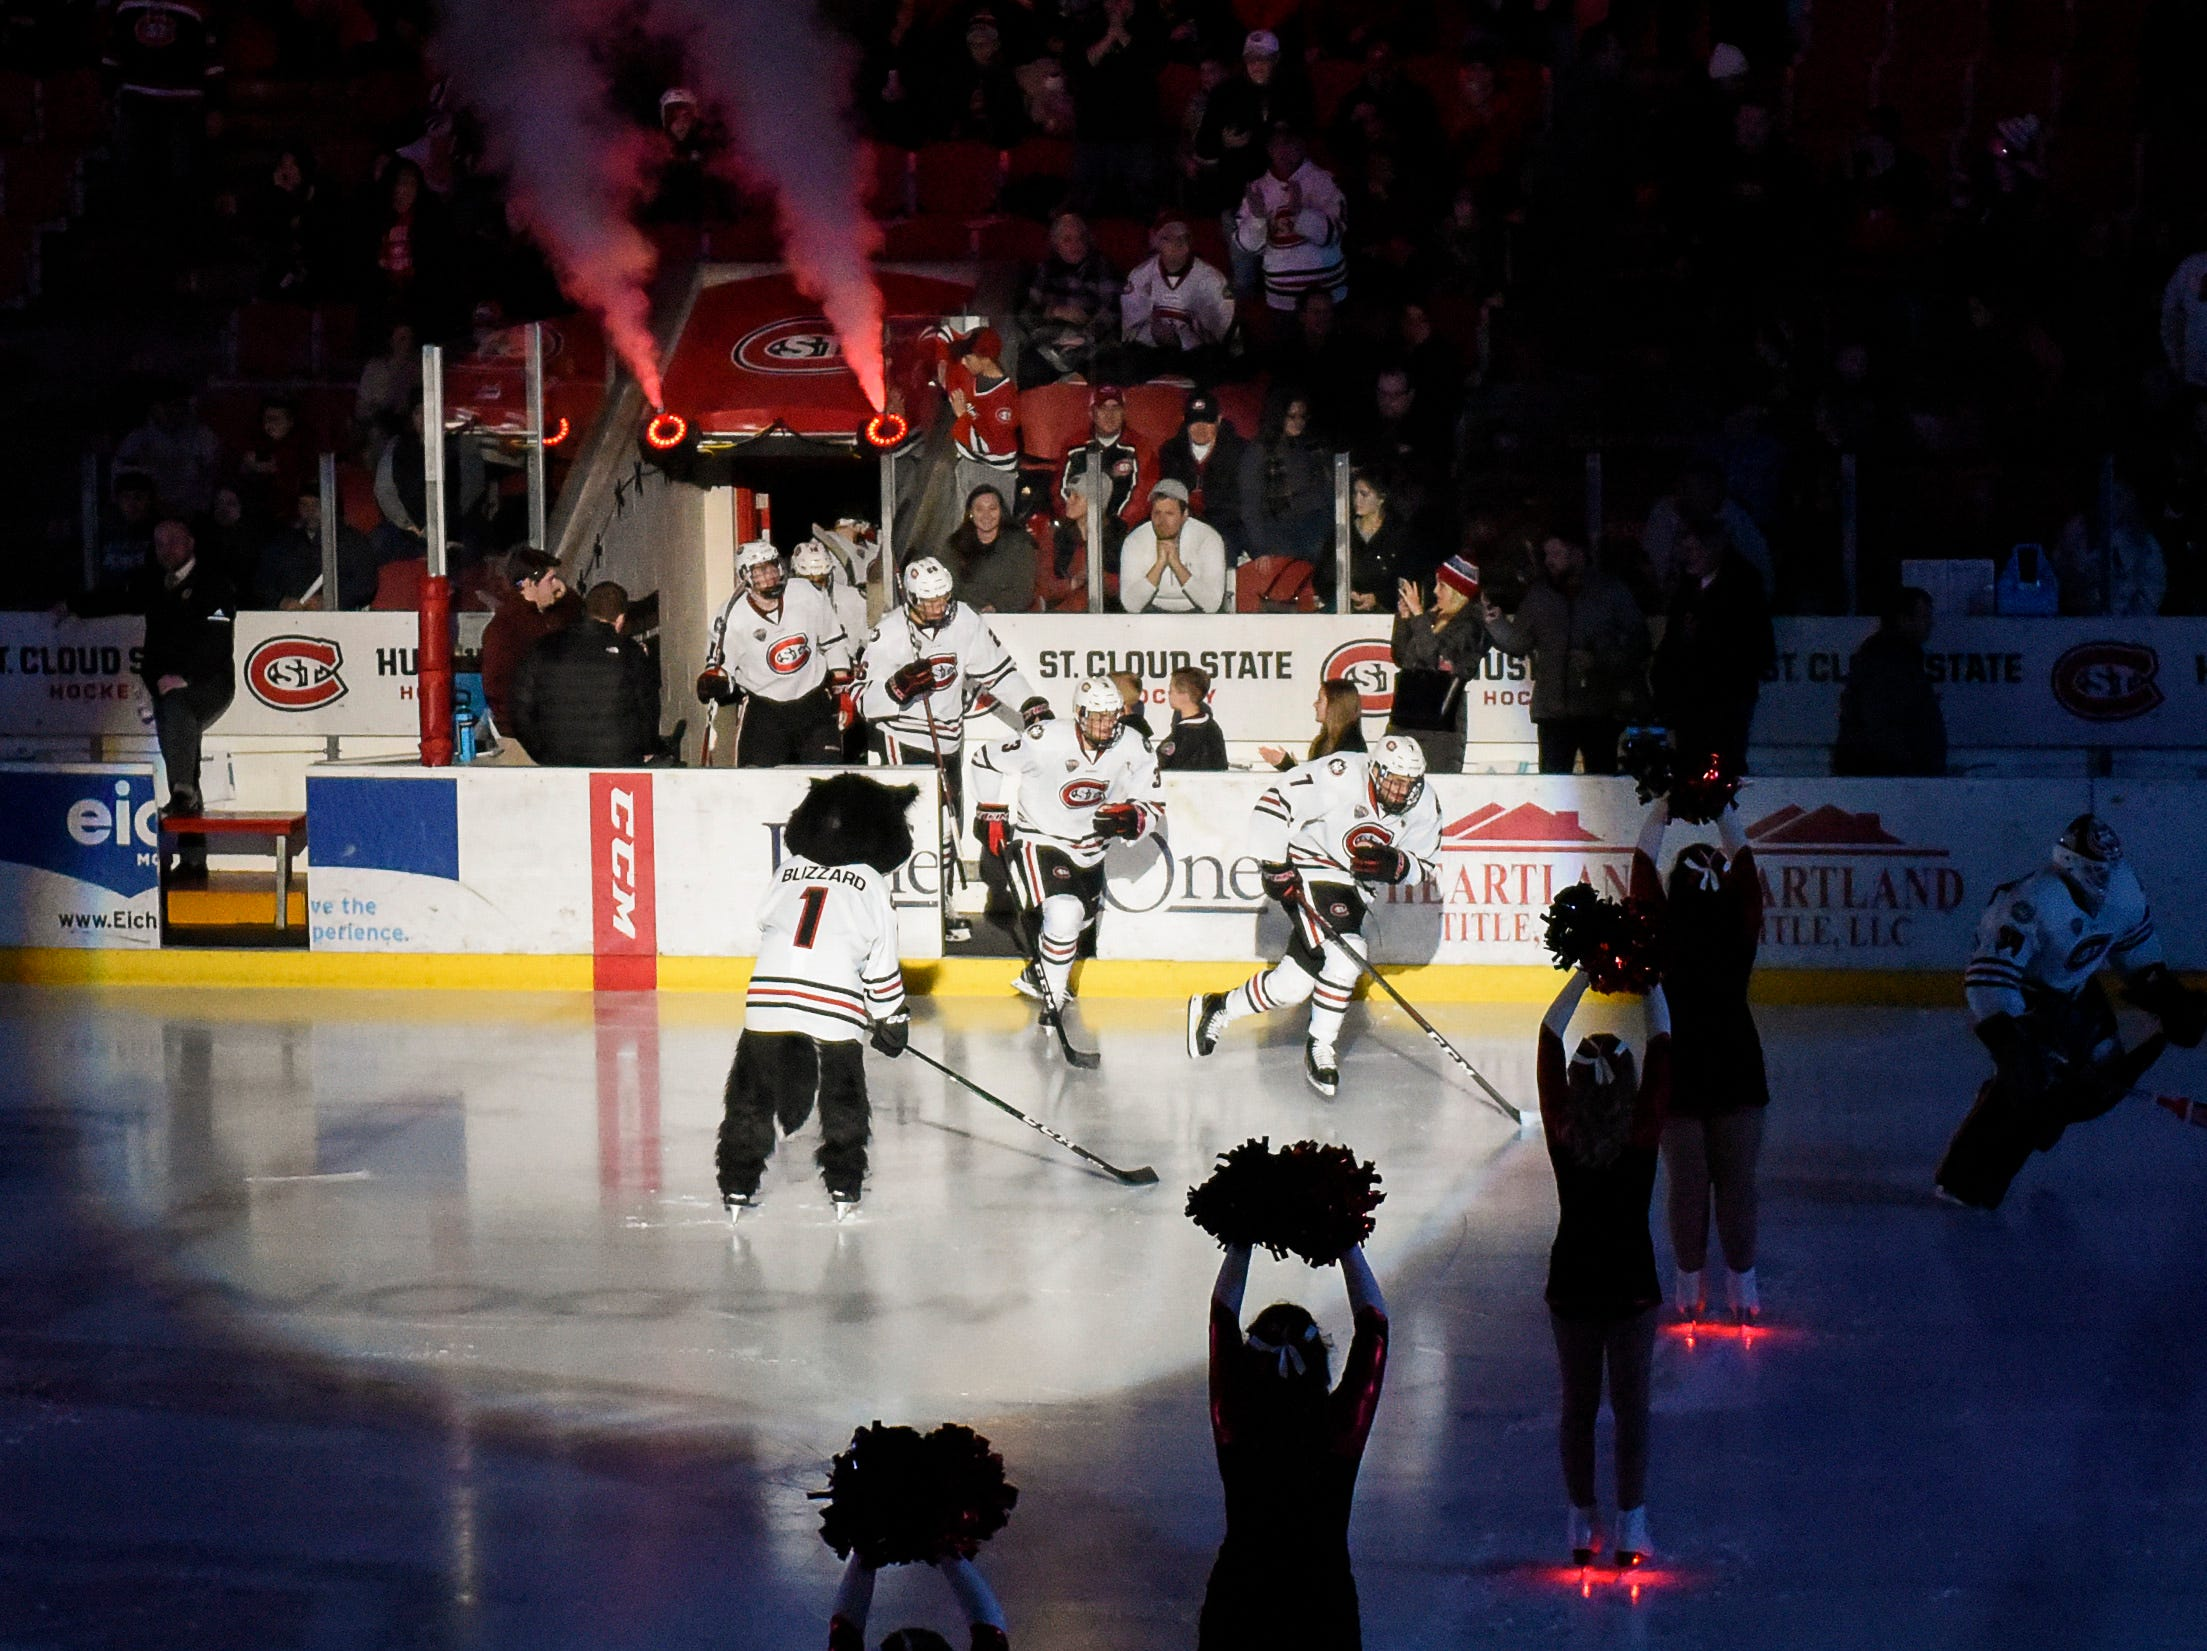 St. Cloud State takes the ice for the start of their game against Nebraska-Omaha Saturday, Dec. 8, at the Herb Brooks National Hockey Center.